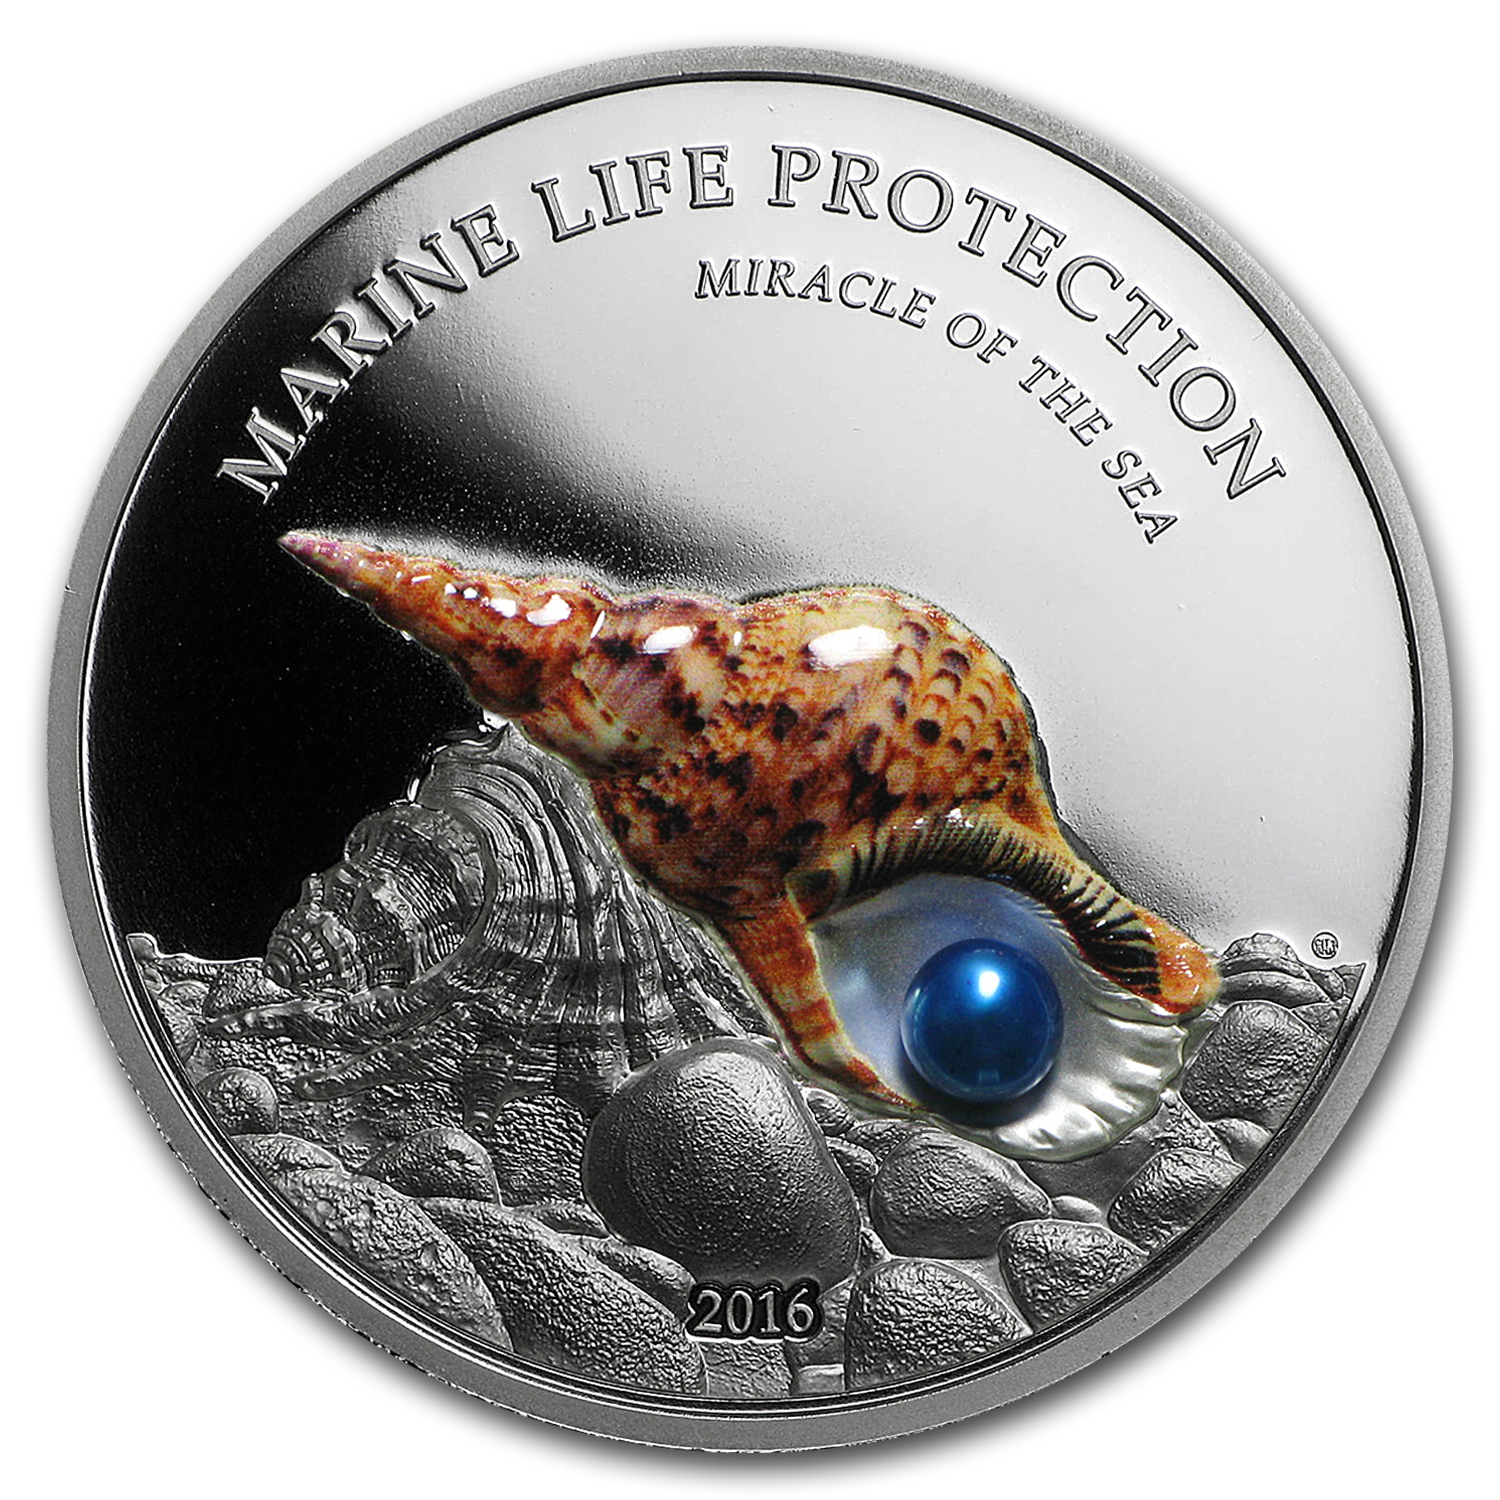 2016 Palau Silver Marine Life Protection Pearl Miracle of the Sea